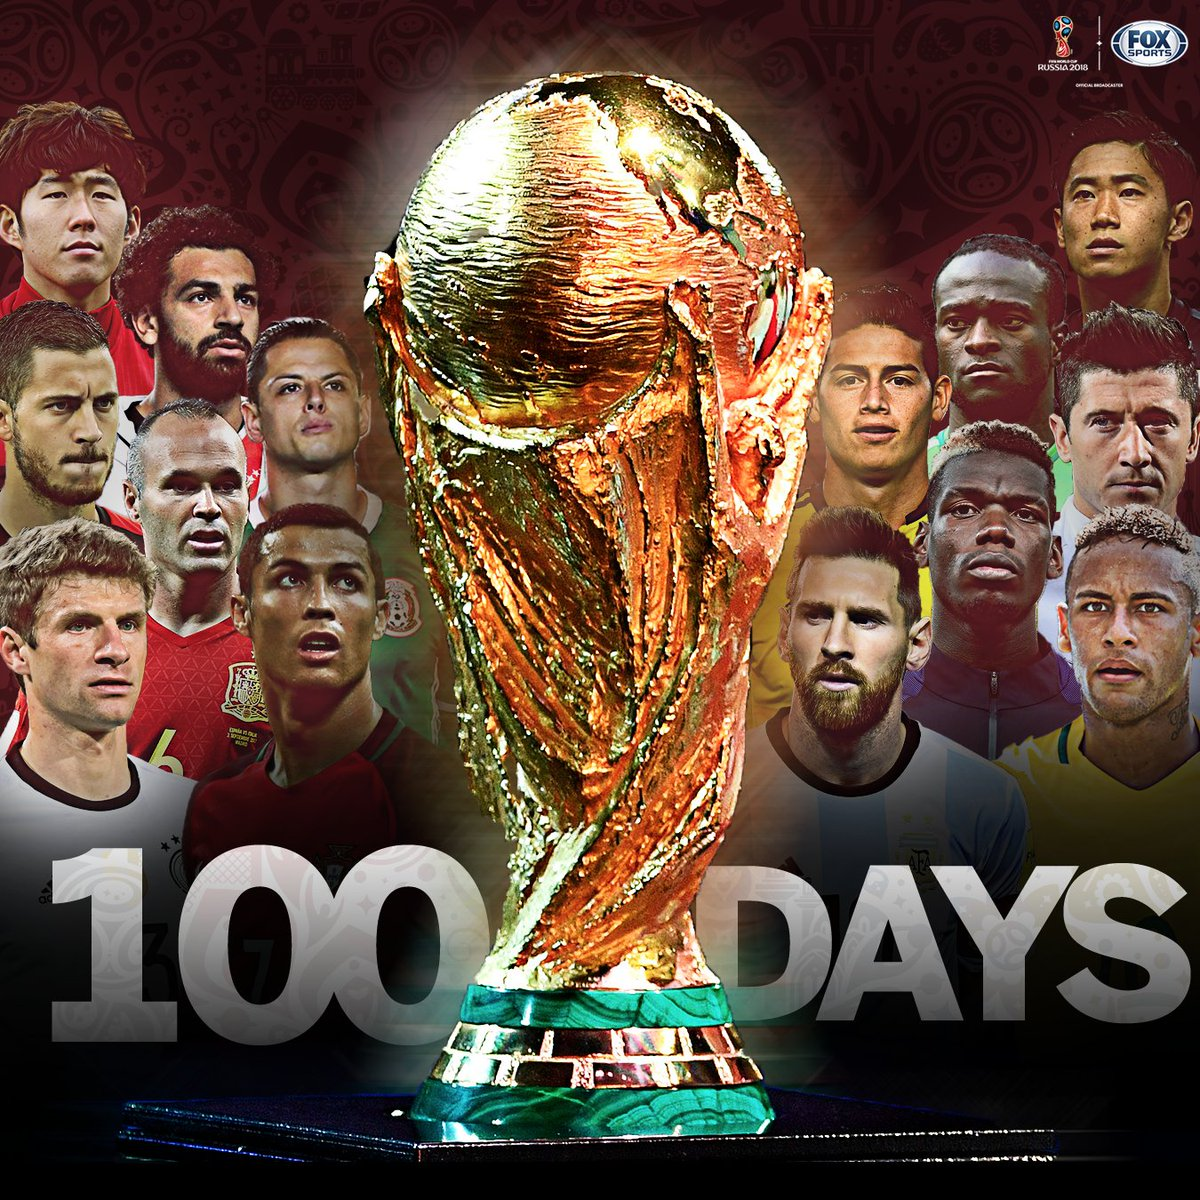 ONLY 👏 100 👏 DAYS 👏 UNTIL 👏 THE 👏 WORLD 👏 CUP👏